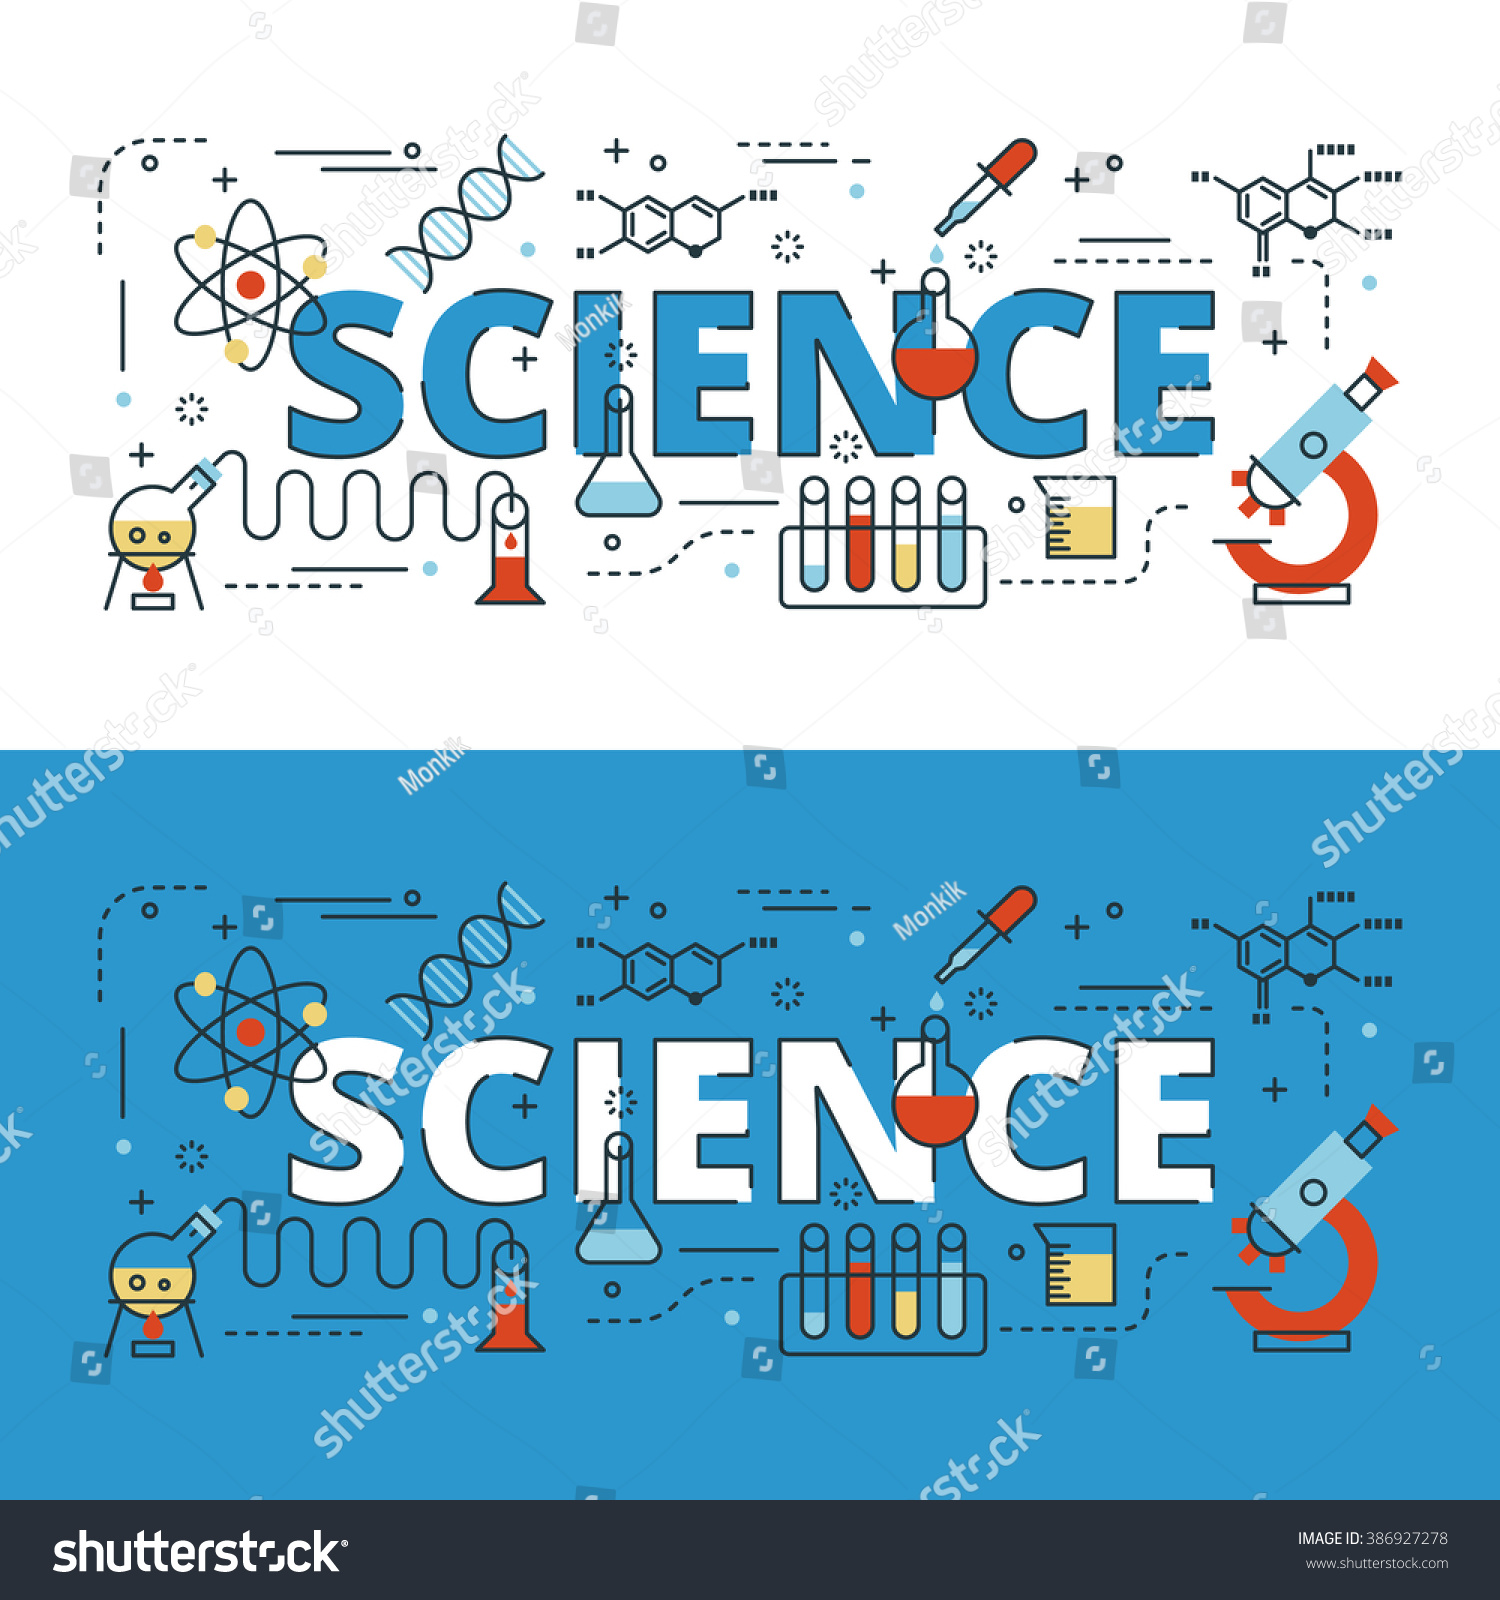 Science Book Cover Design Examples : Science lettering flat line design icons stock vector